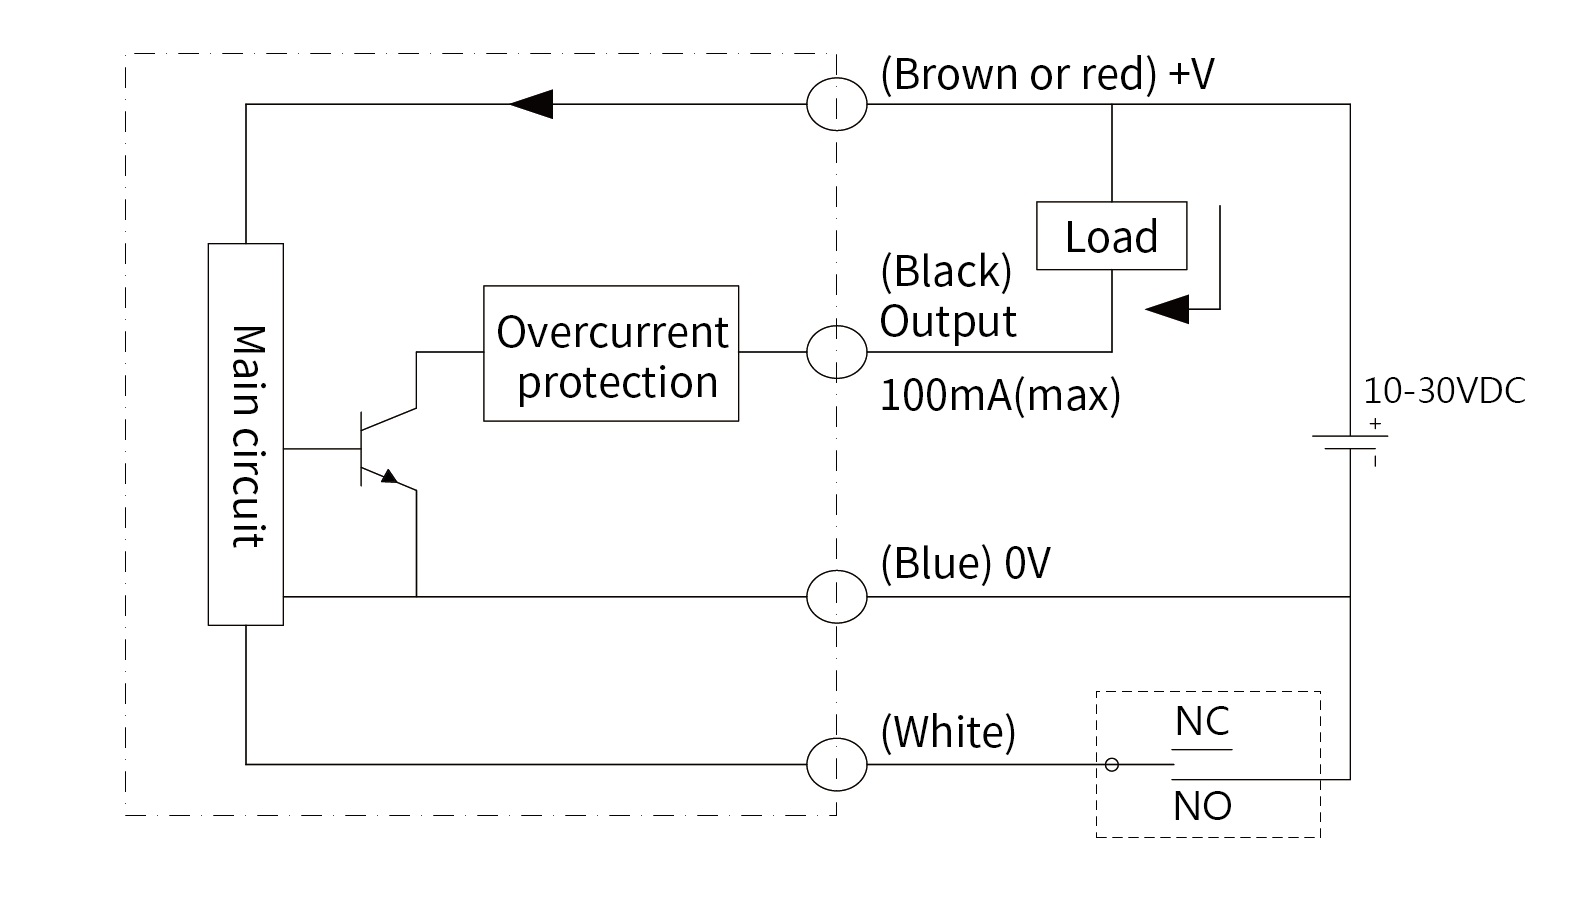 optical-liquid-level-switch-polysulfone-wiring-diagram-npn-open-collector-output